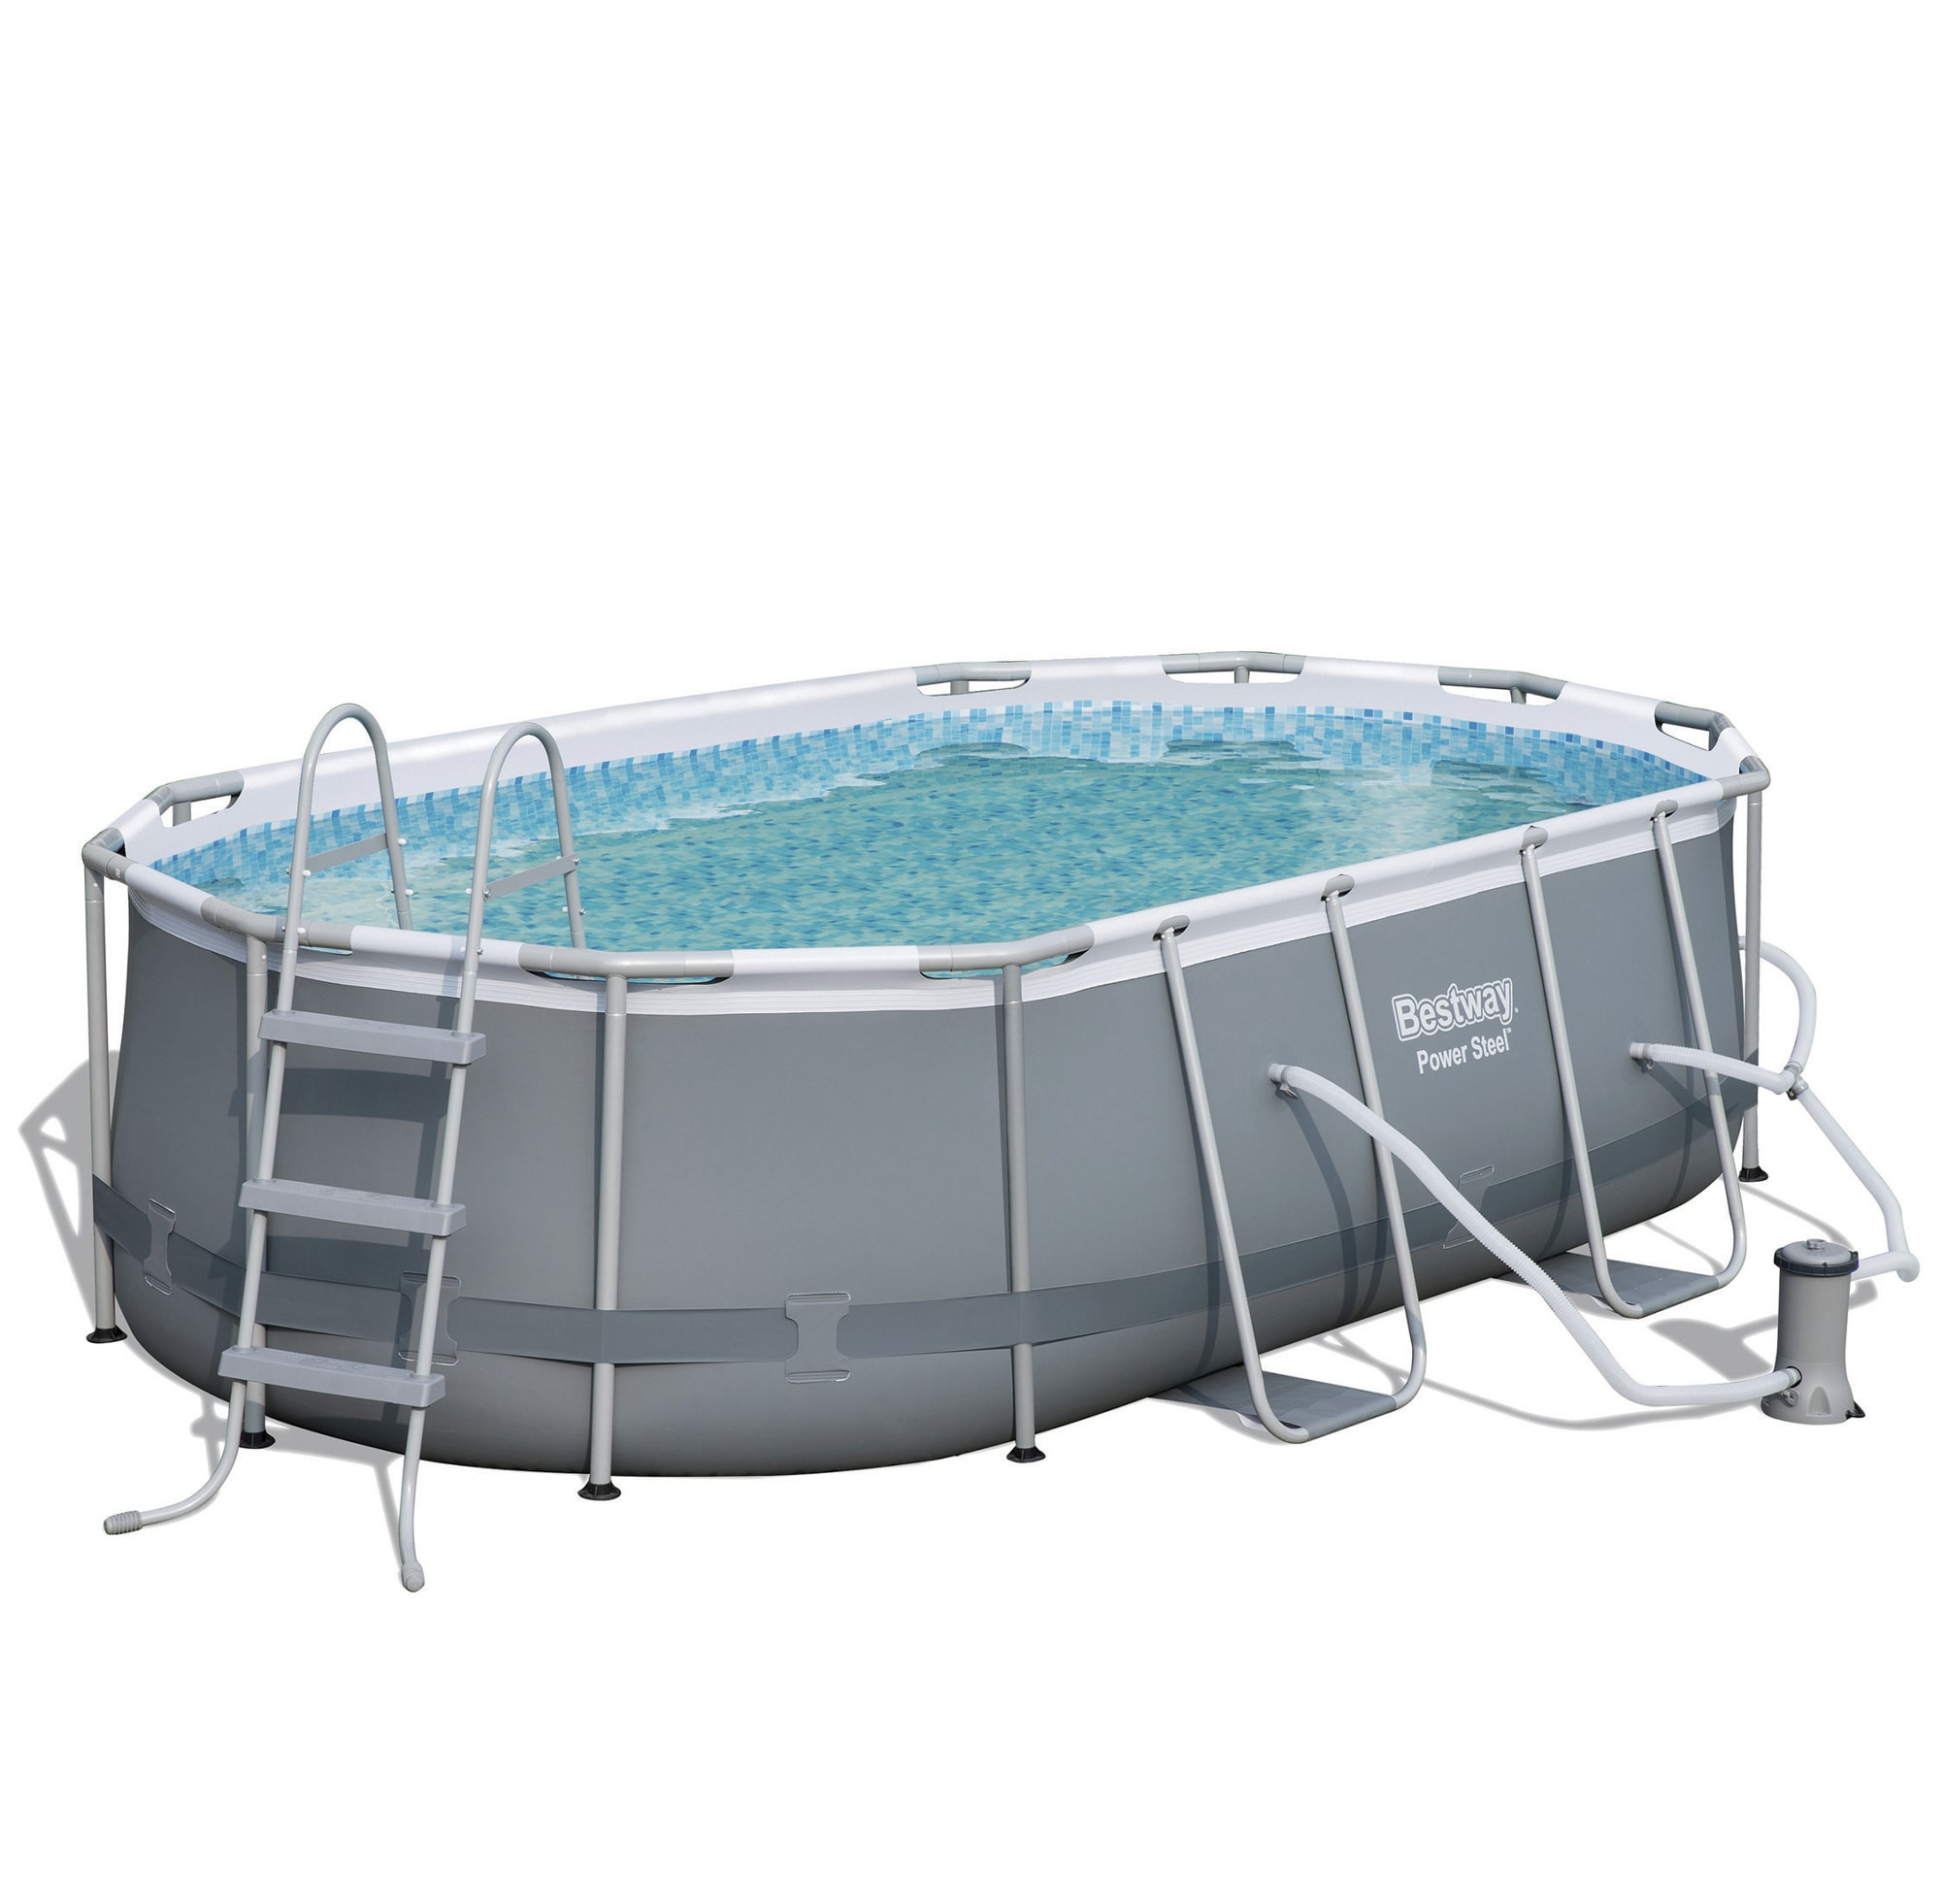 Bestway Pool Abdeckung Oval 14 39 Power Steel Frame Oval Pool By Bestway Montgomery Ward